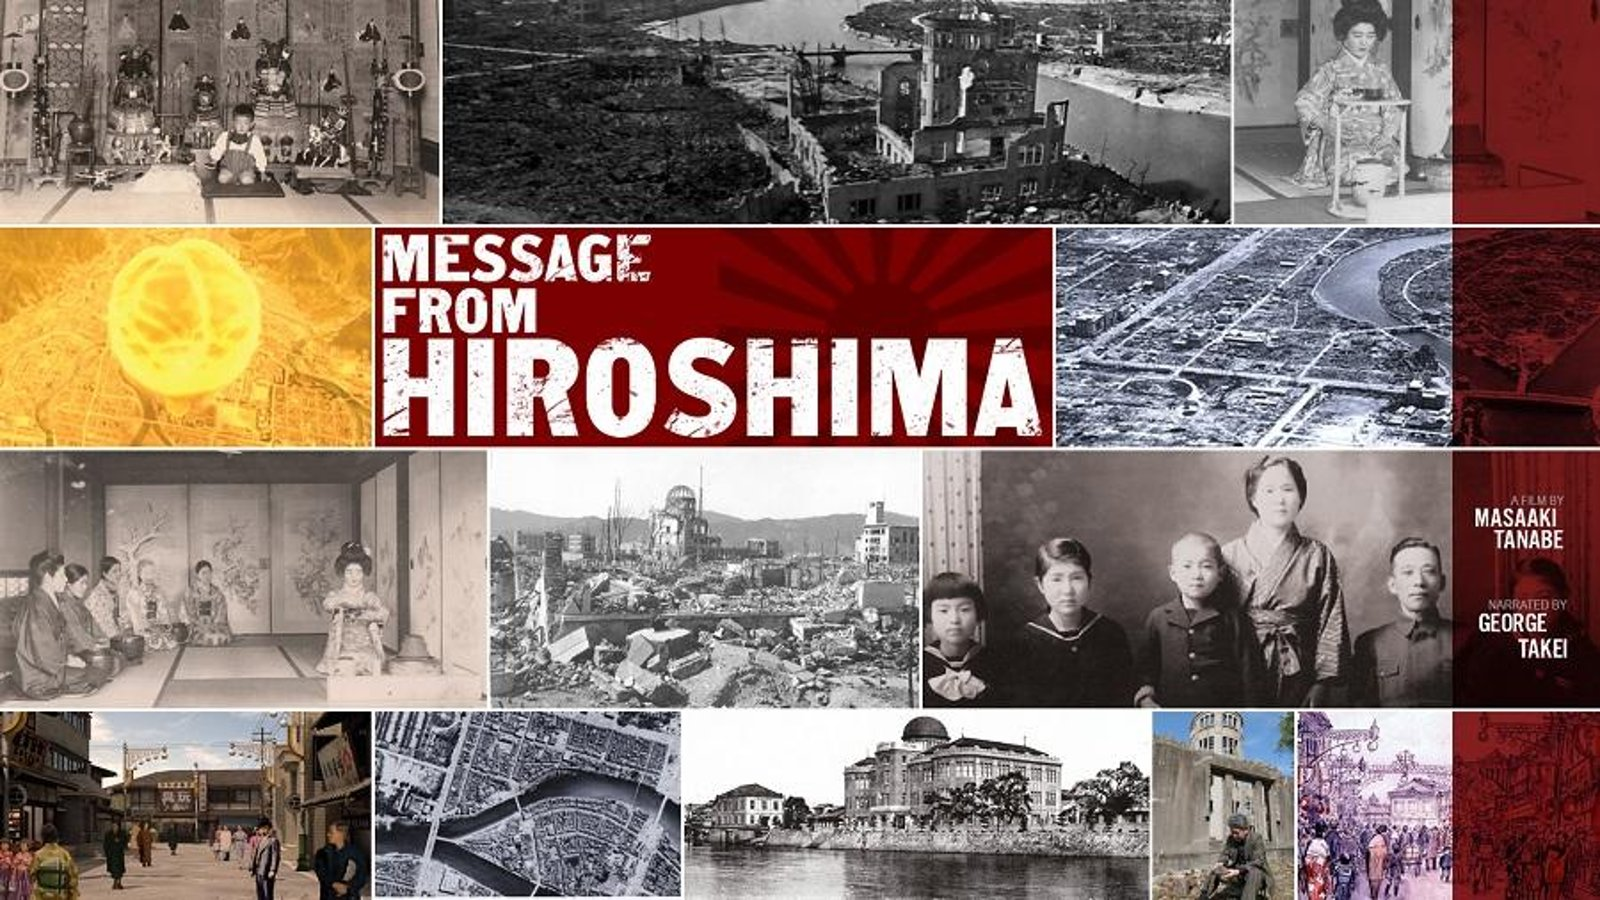 Message From Hiroshima - Remembering the Life & Culture of Hiroshima Before the Bombing